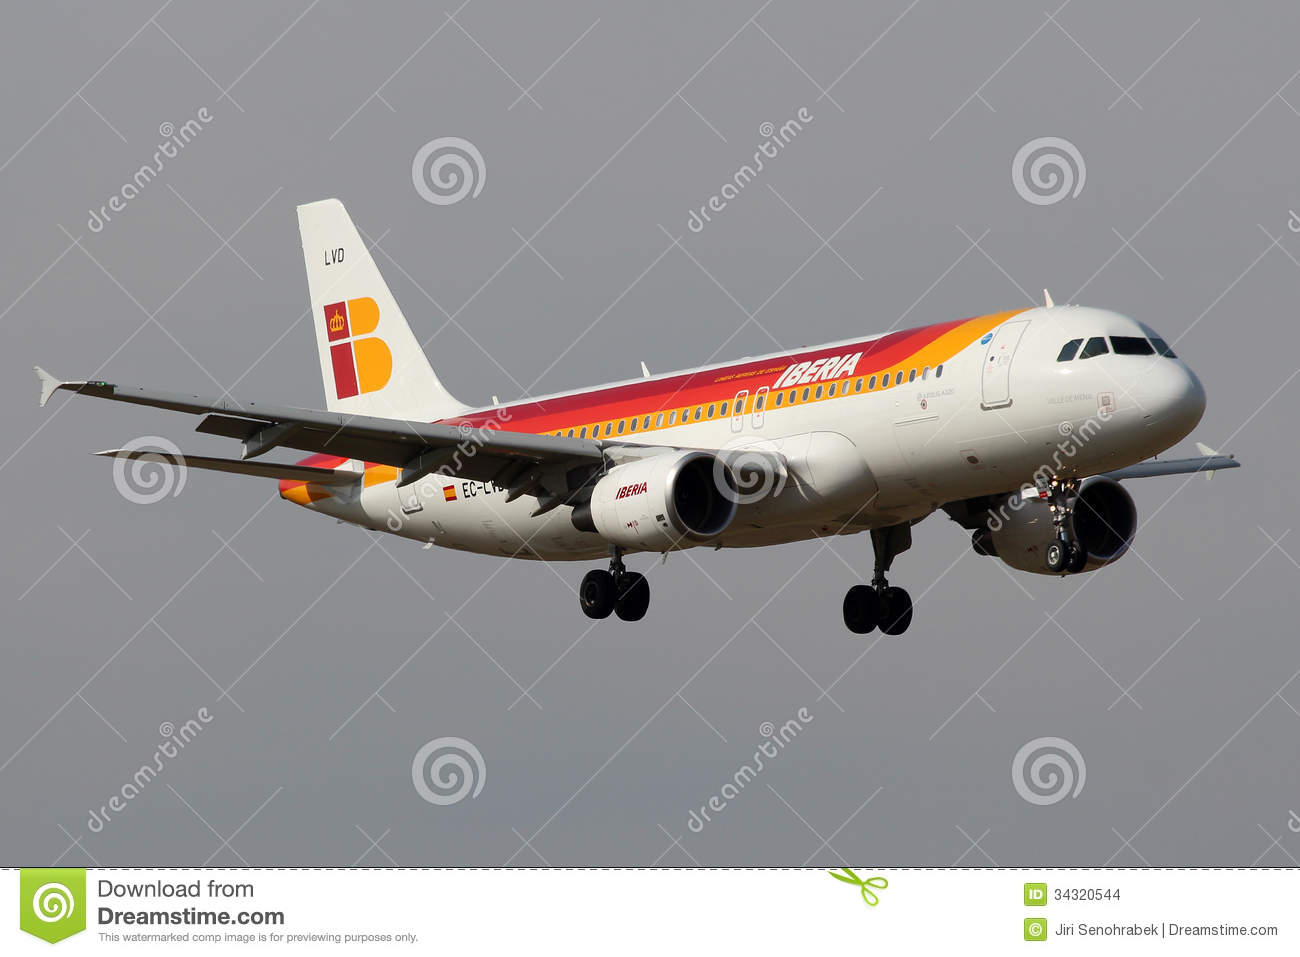 Flag Carrier Airline Logos Flag Carrier Airline Spain